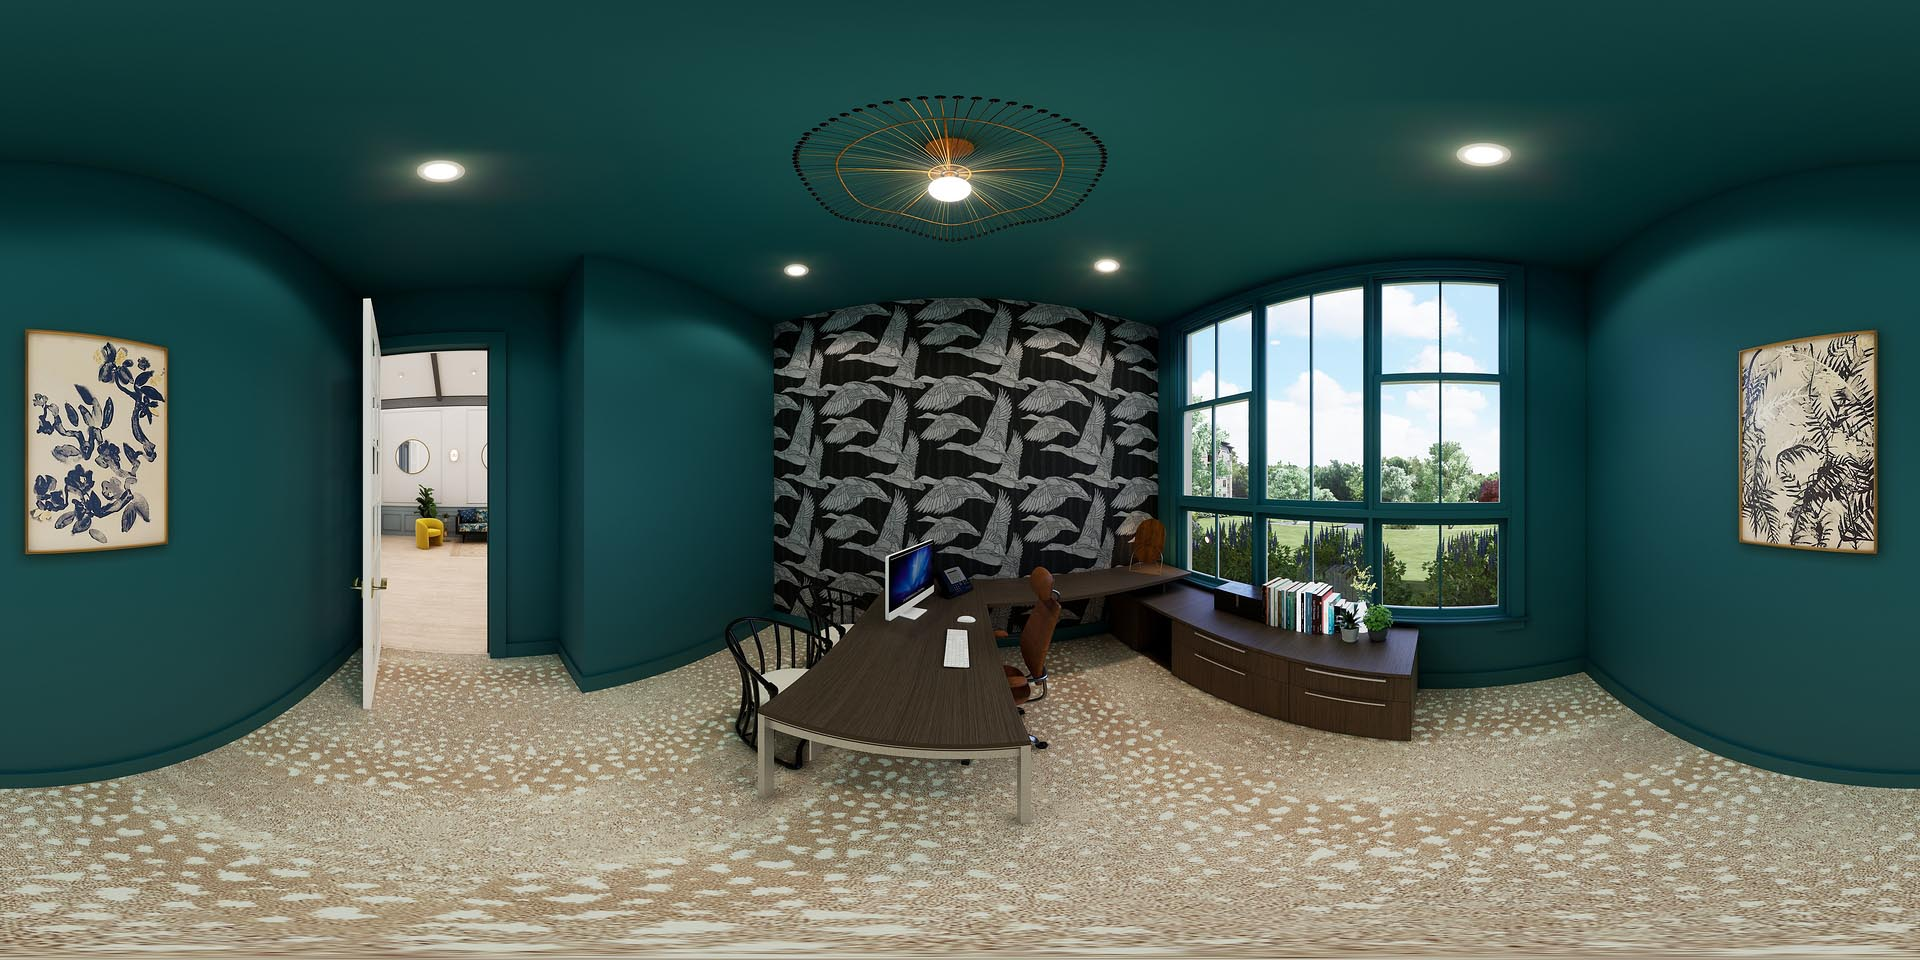 A 360 rendering of a leasing office